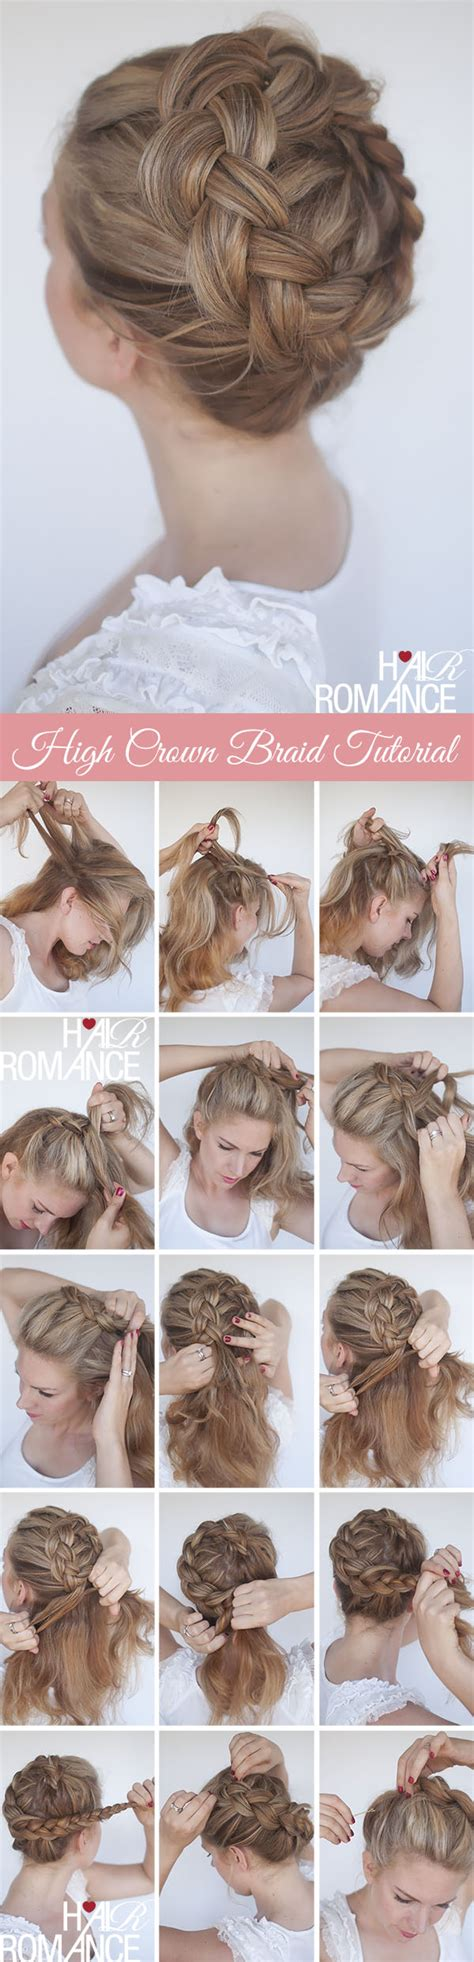 hairstyles braided tutorial new braid tutorial the high braided crown hairstyle